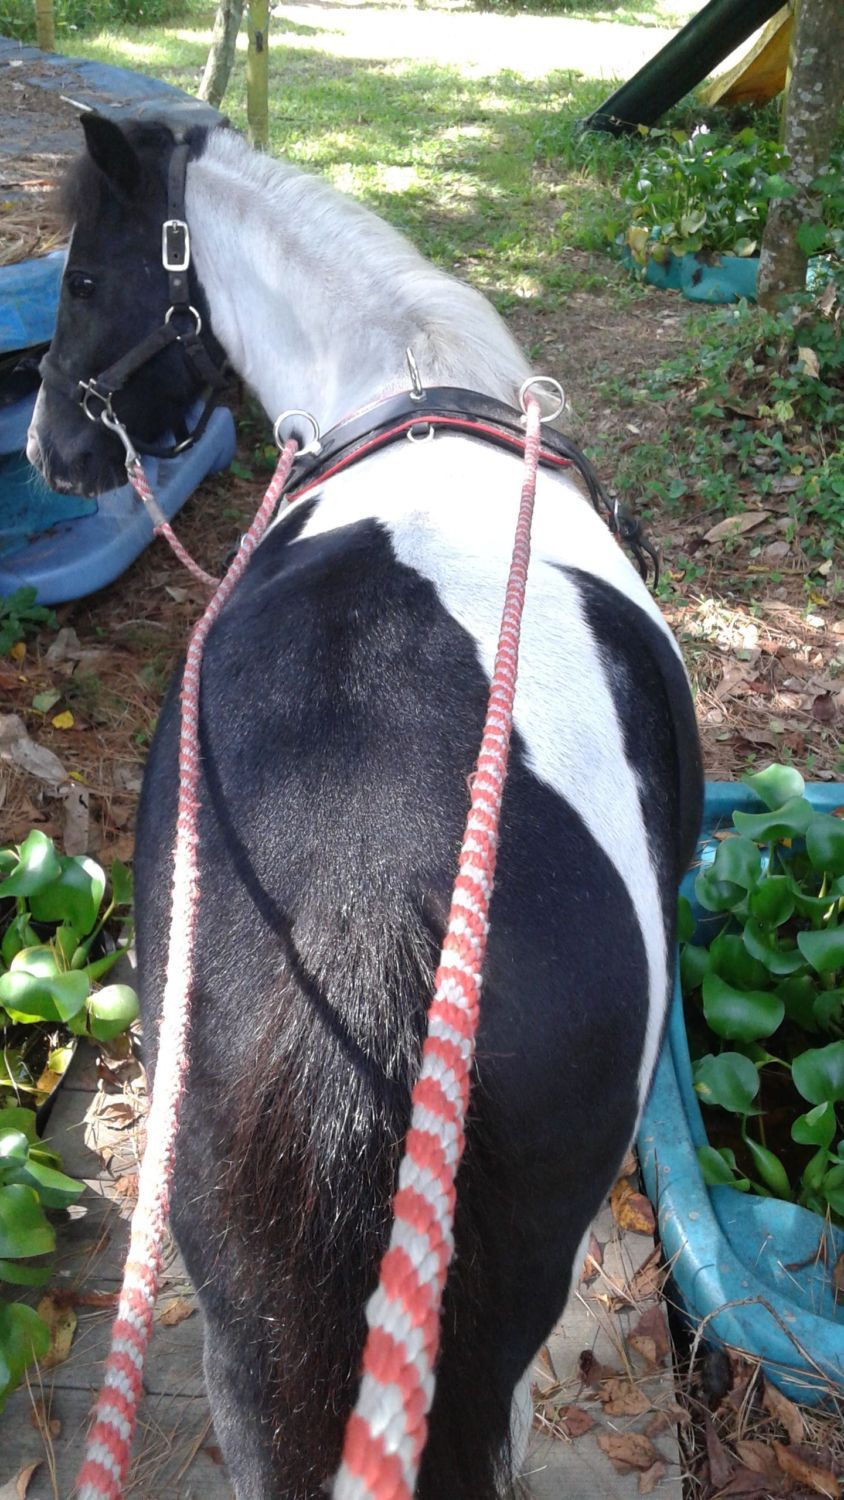 Bunnylady's photos in Horse trying to kill other animals